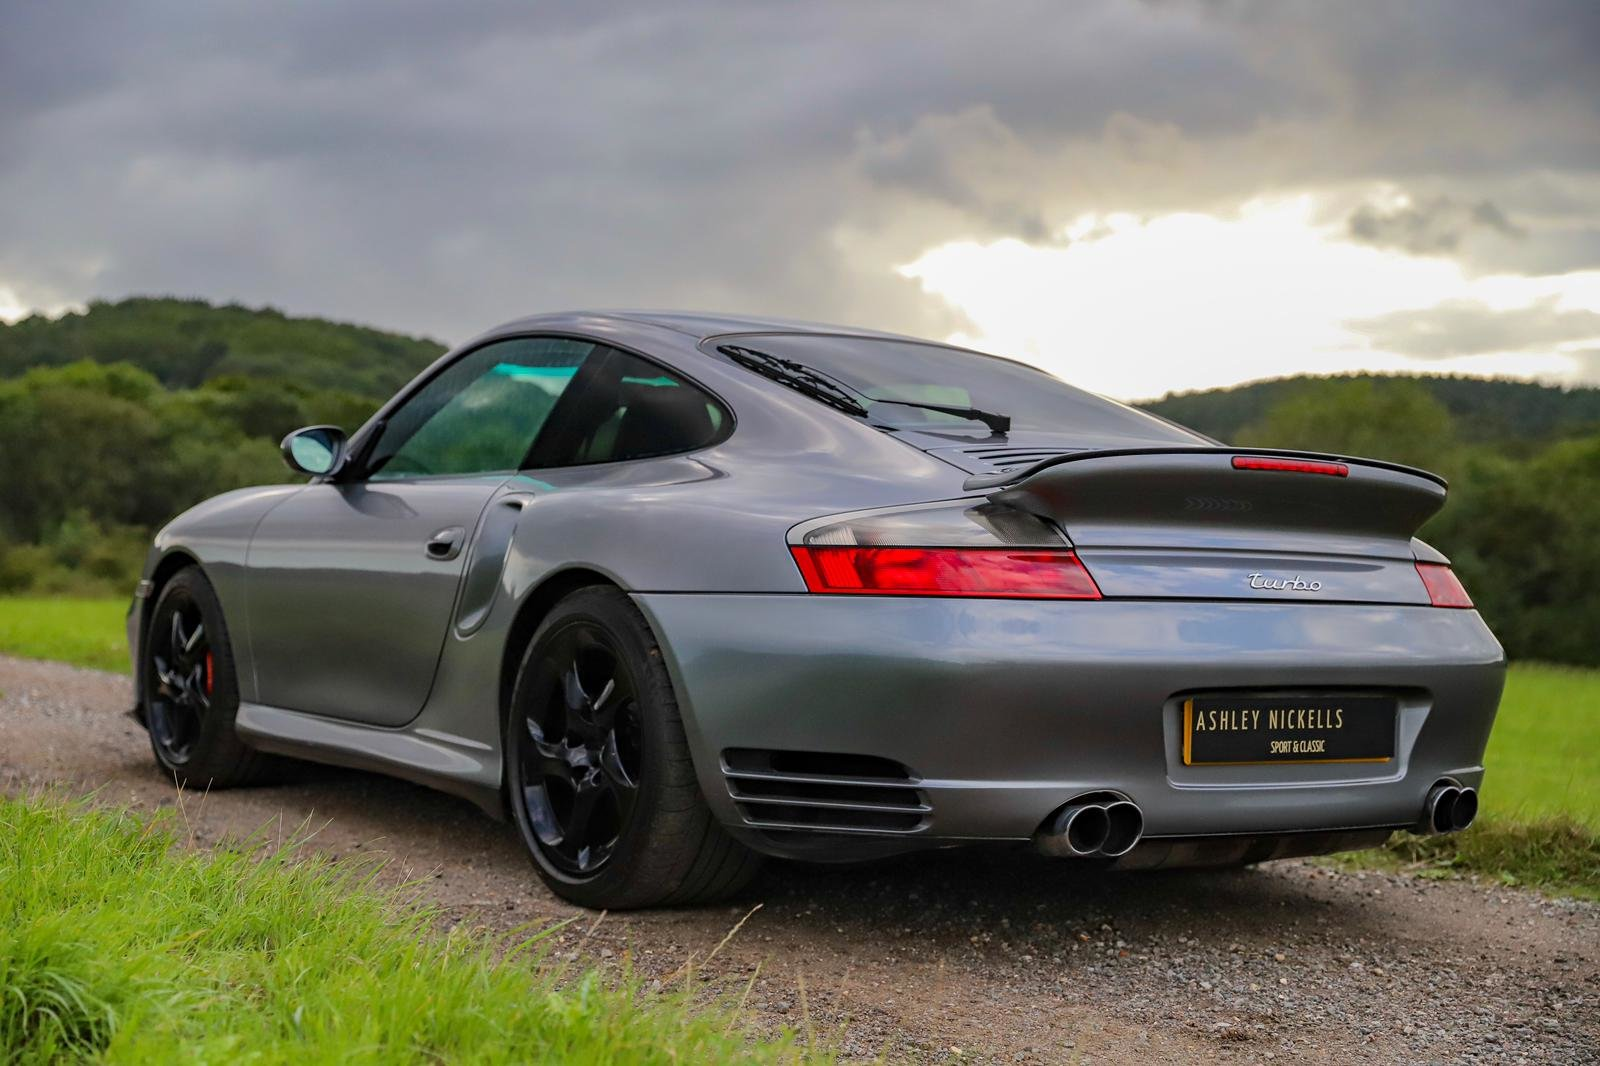 2000 PORSCHE 996 TURBO - MANUAL COUPE - 20 SERVICE STAMPS For Sale (picture 3 of 6)